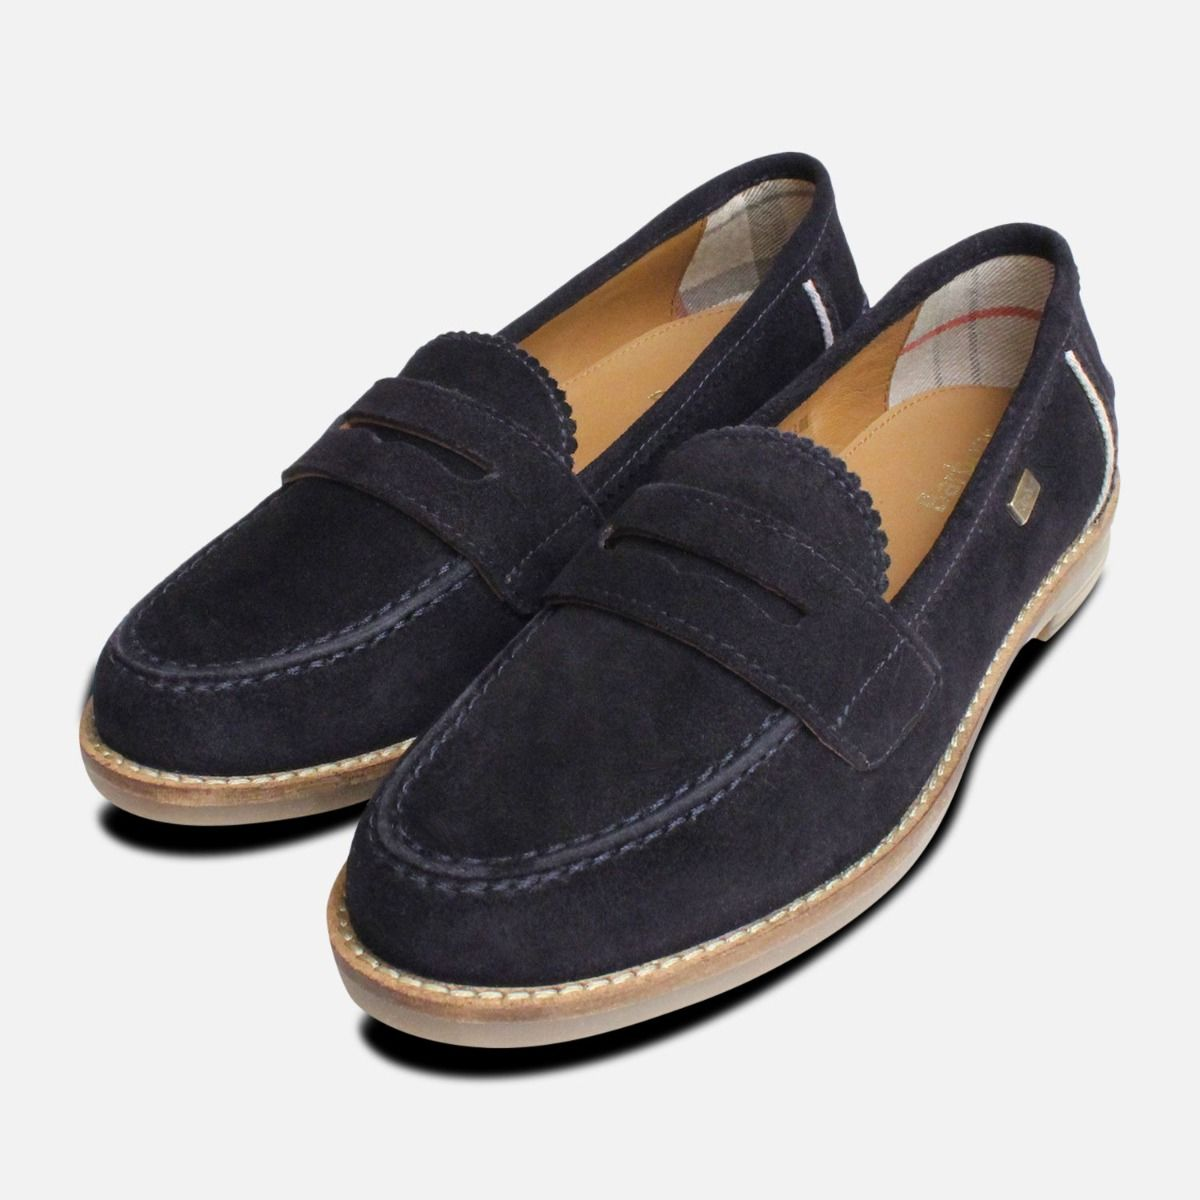 754ae48bf94 Barbour Briony Loafers in Navy Blue Suede